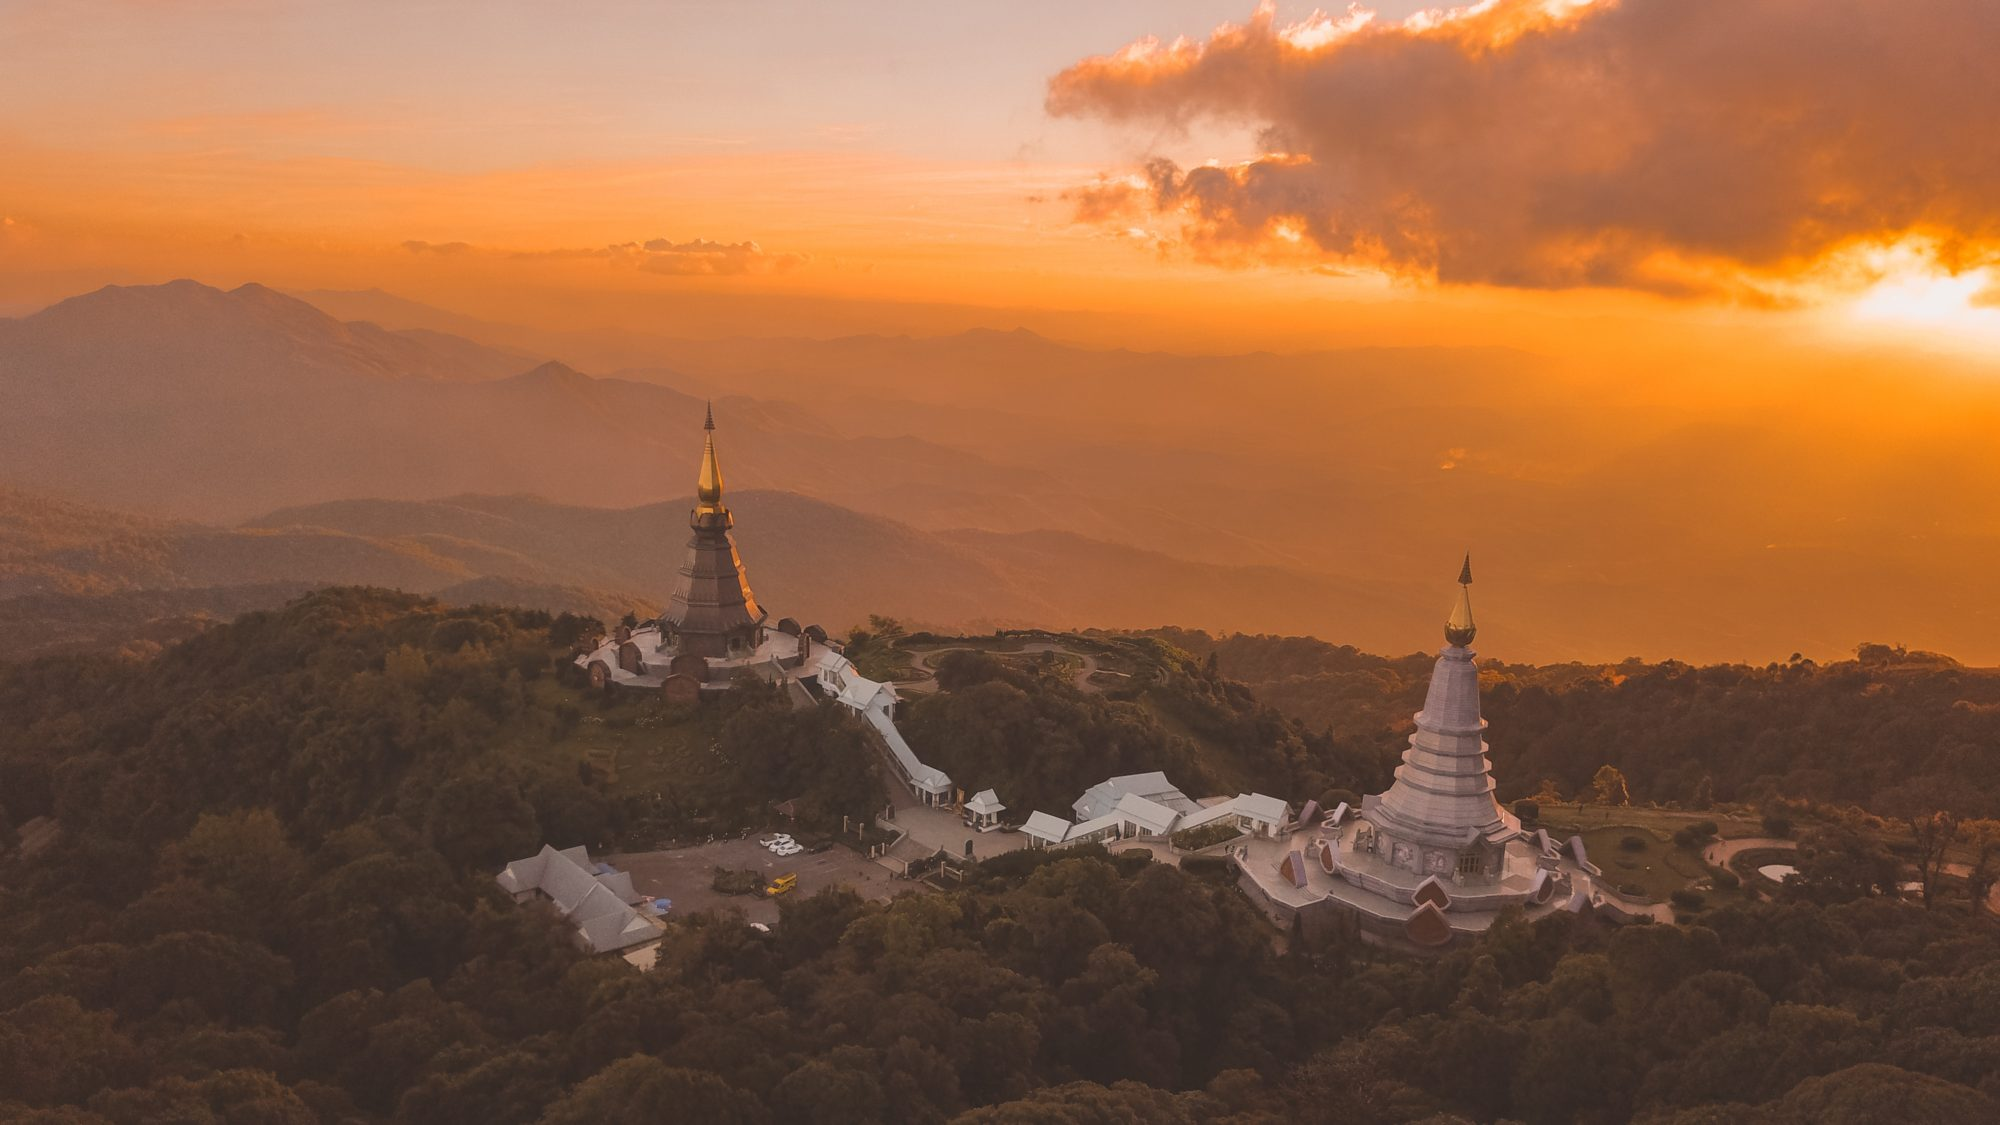 Doi Inthanon National Park, Ban Luang, Thailand